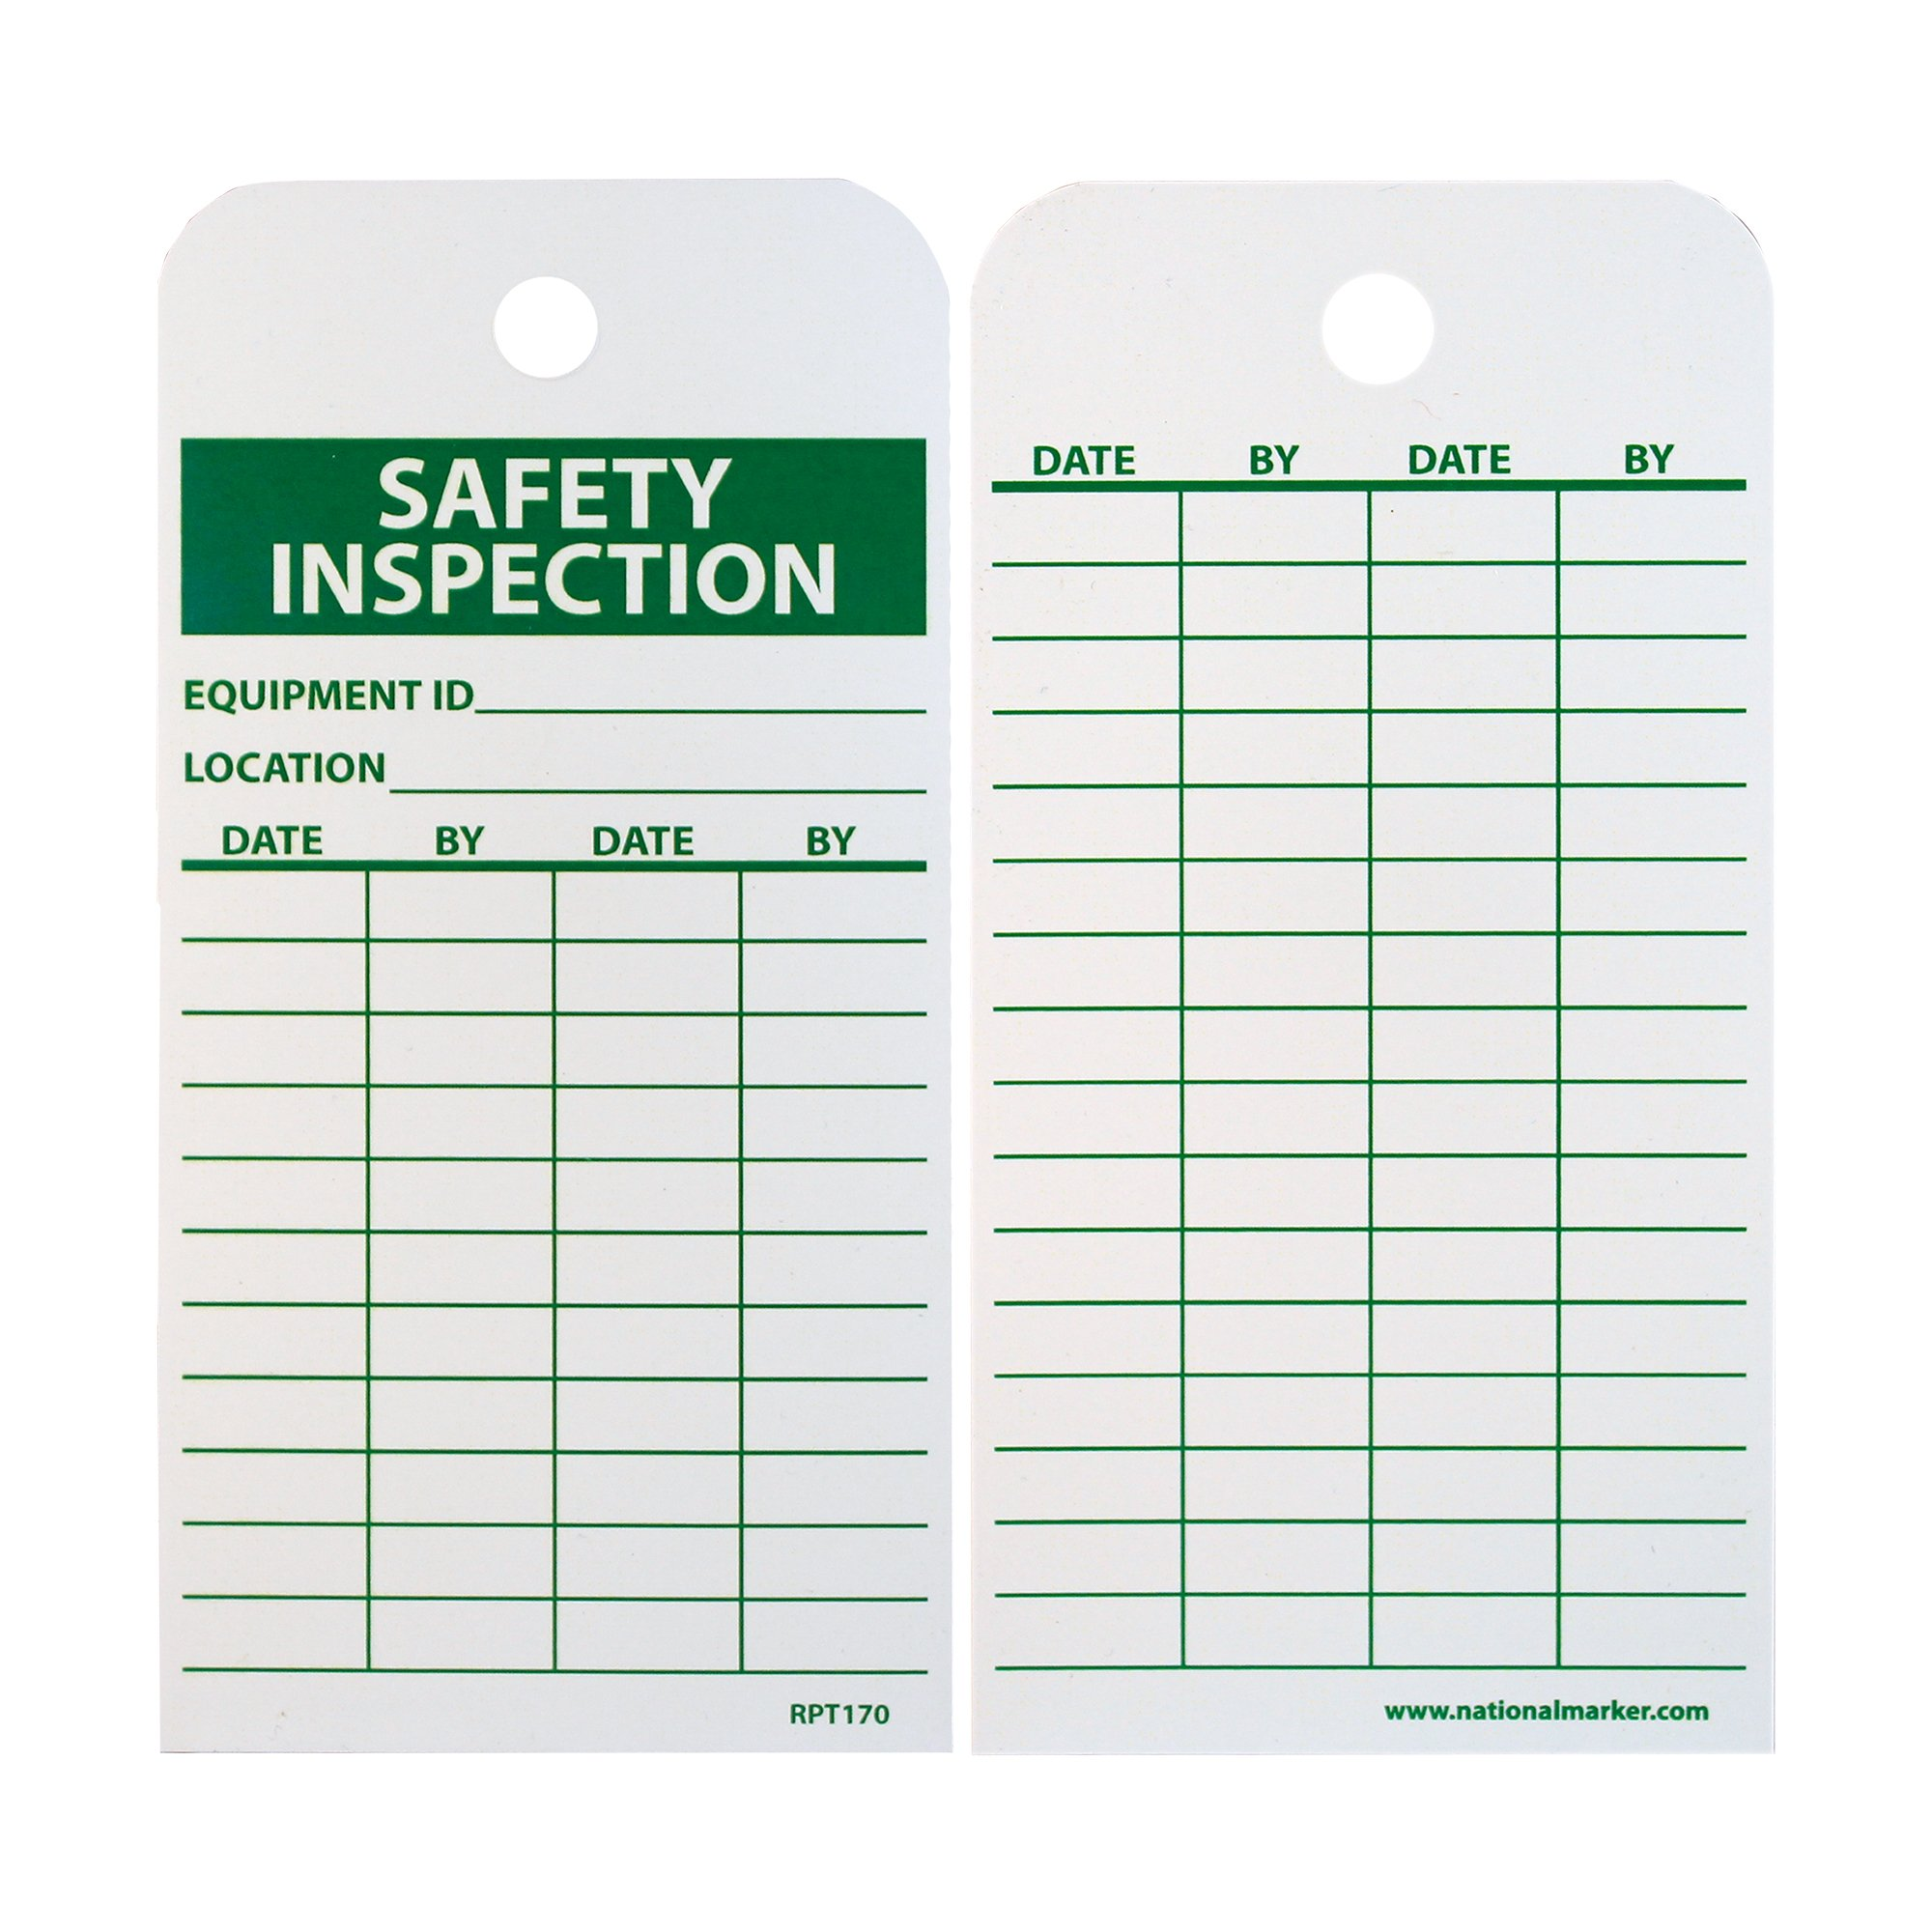 NMC RPT170 Accident Prevention Tag,''SAFETY INSPECTION'', 3'' Width x 6'' Height, Unrippable Vinyl, Green on White (Pack of 25)